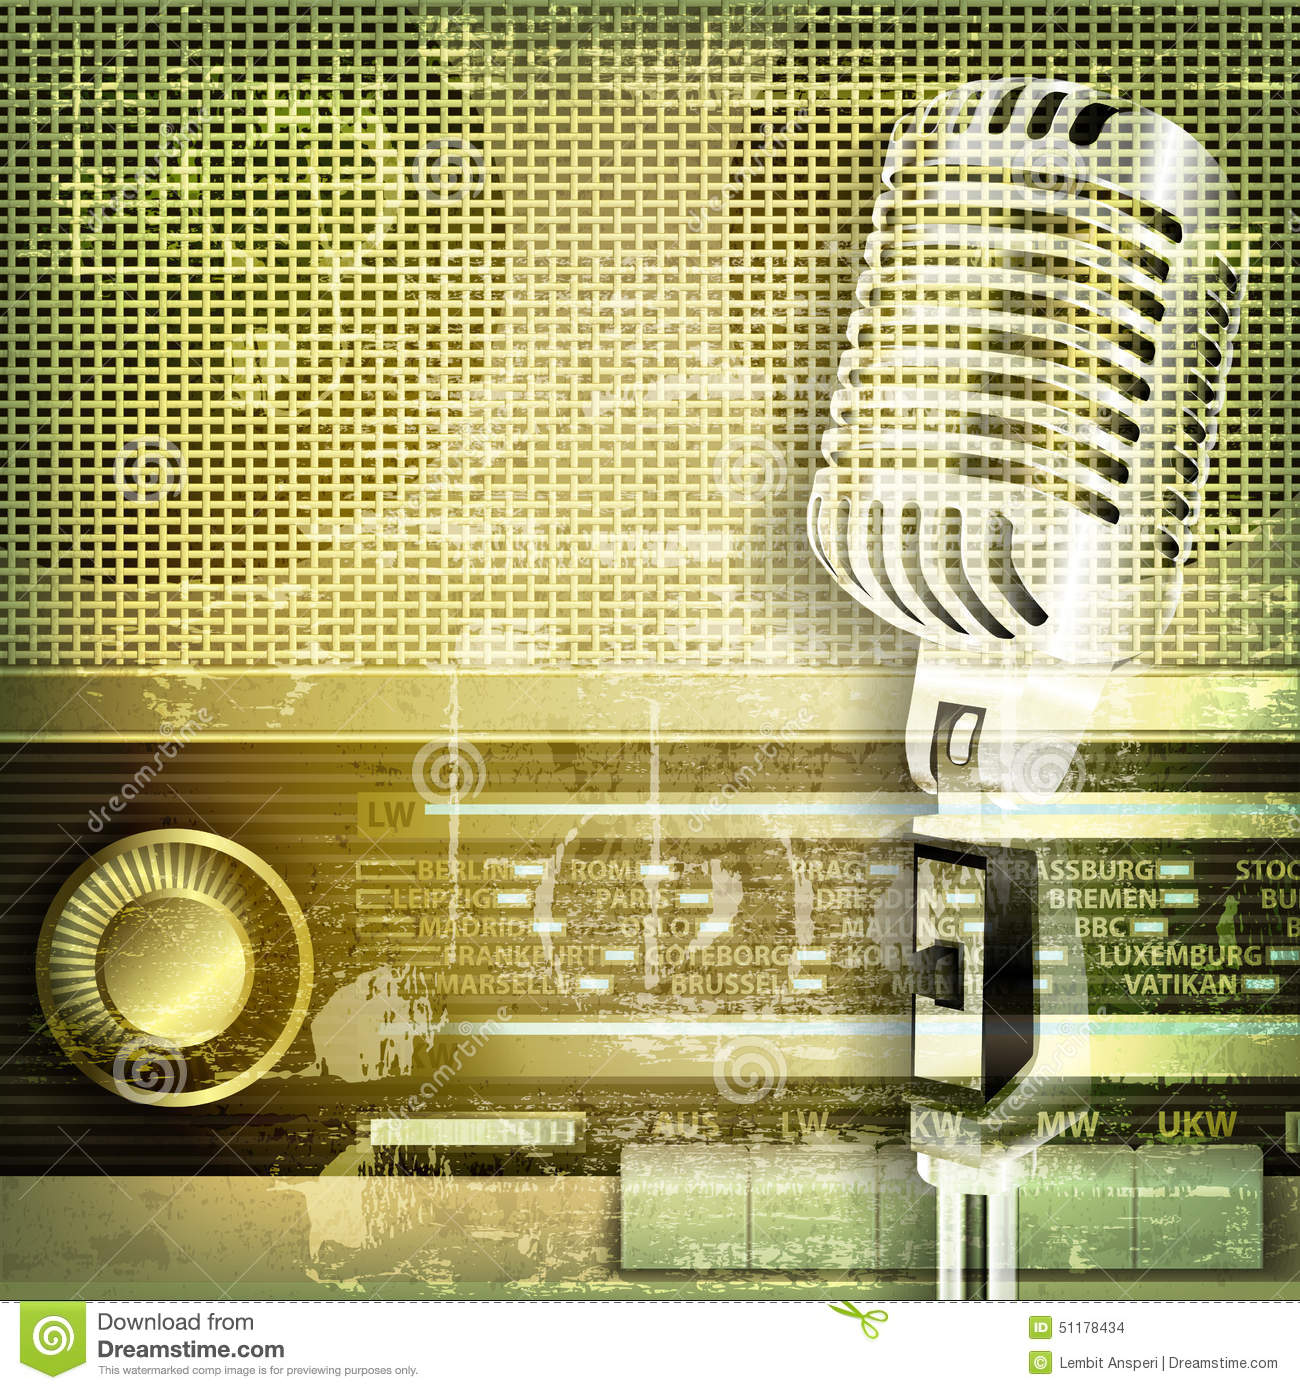 school photo backdrop ideas - Abstract Sound Grunge Background With Microphone And Retro